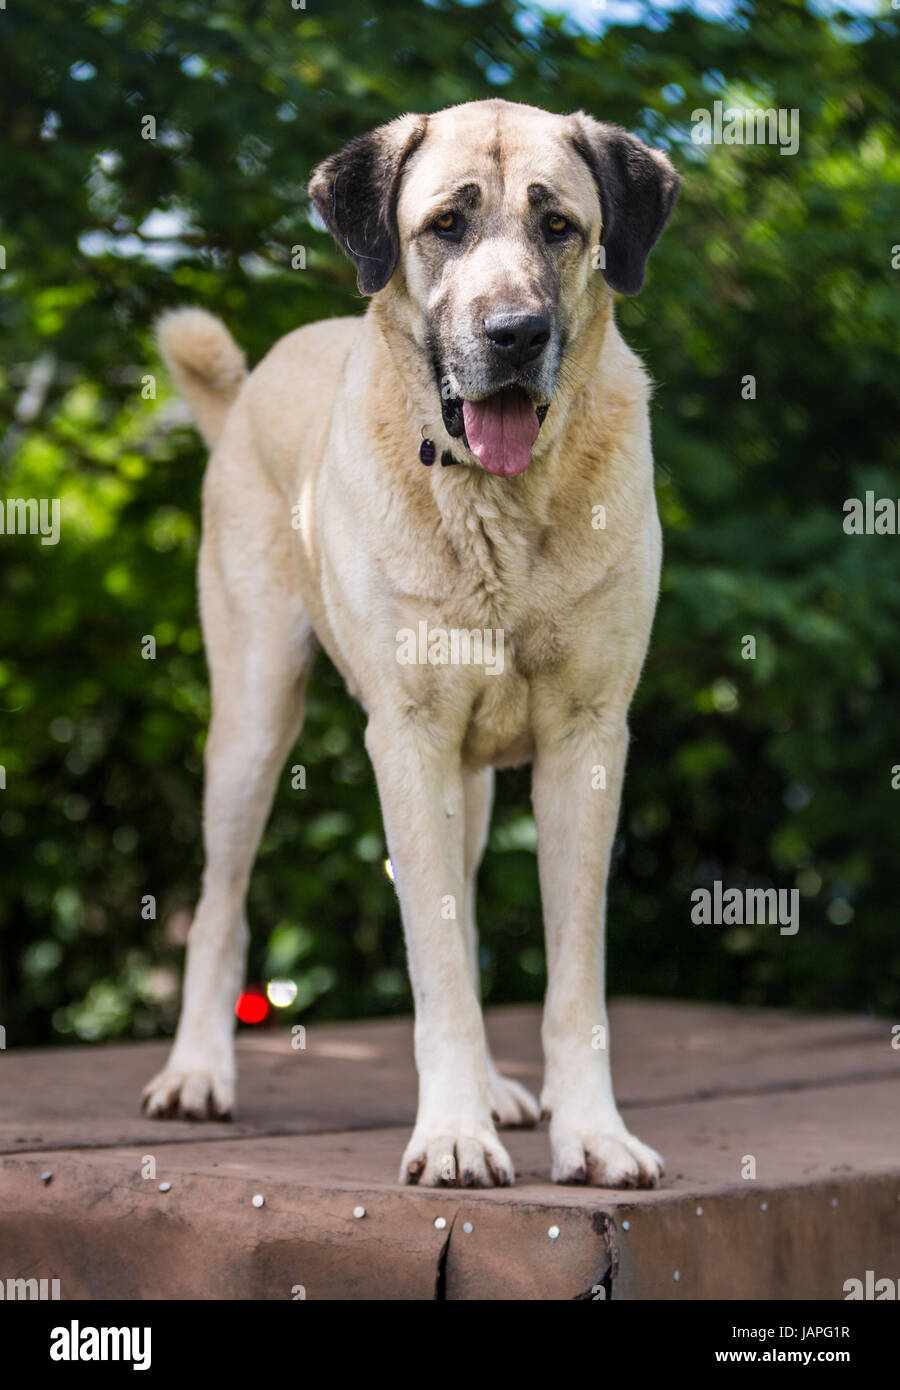 Kangal Dog Stock Photos & Kangal Dog Stock Images - Alamy